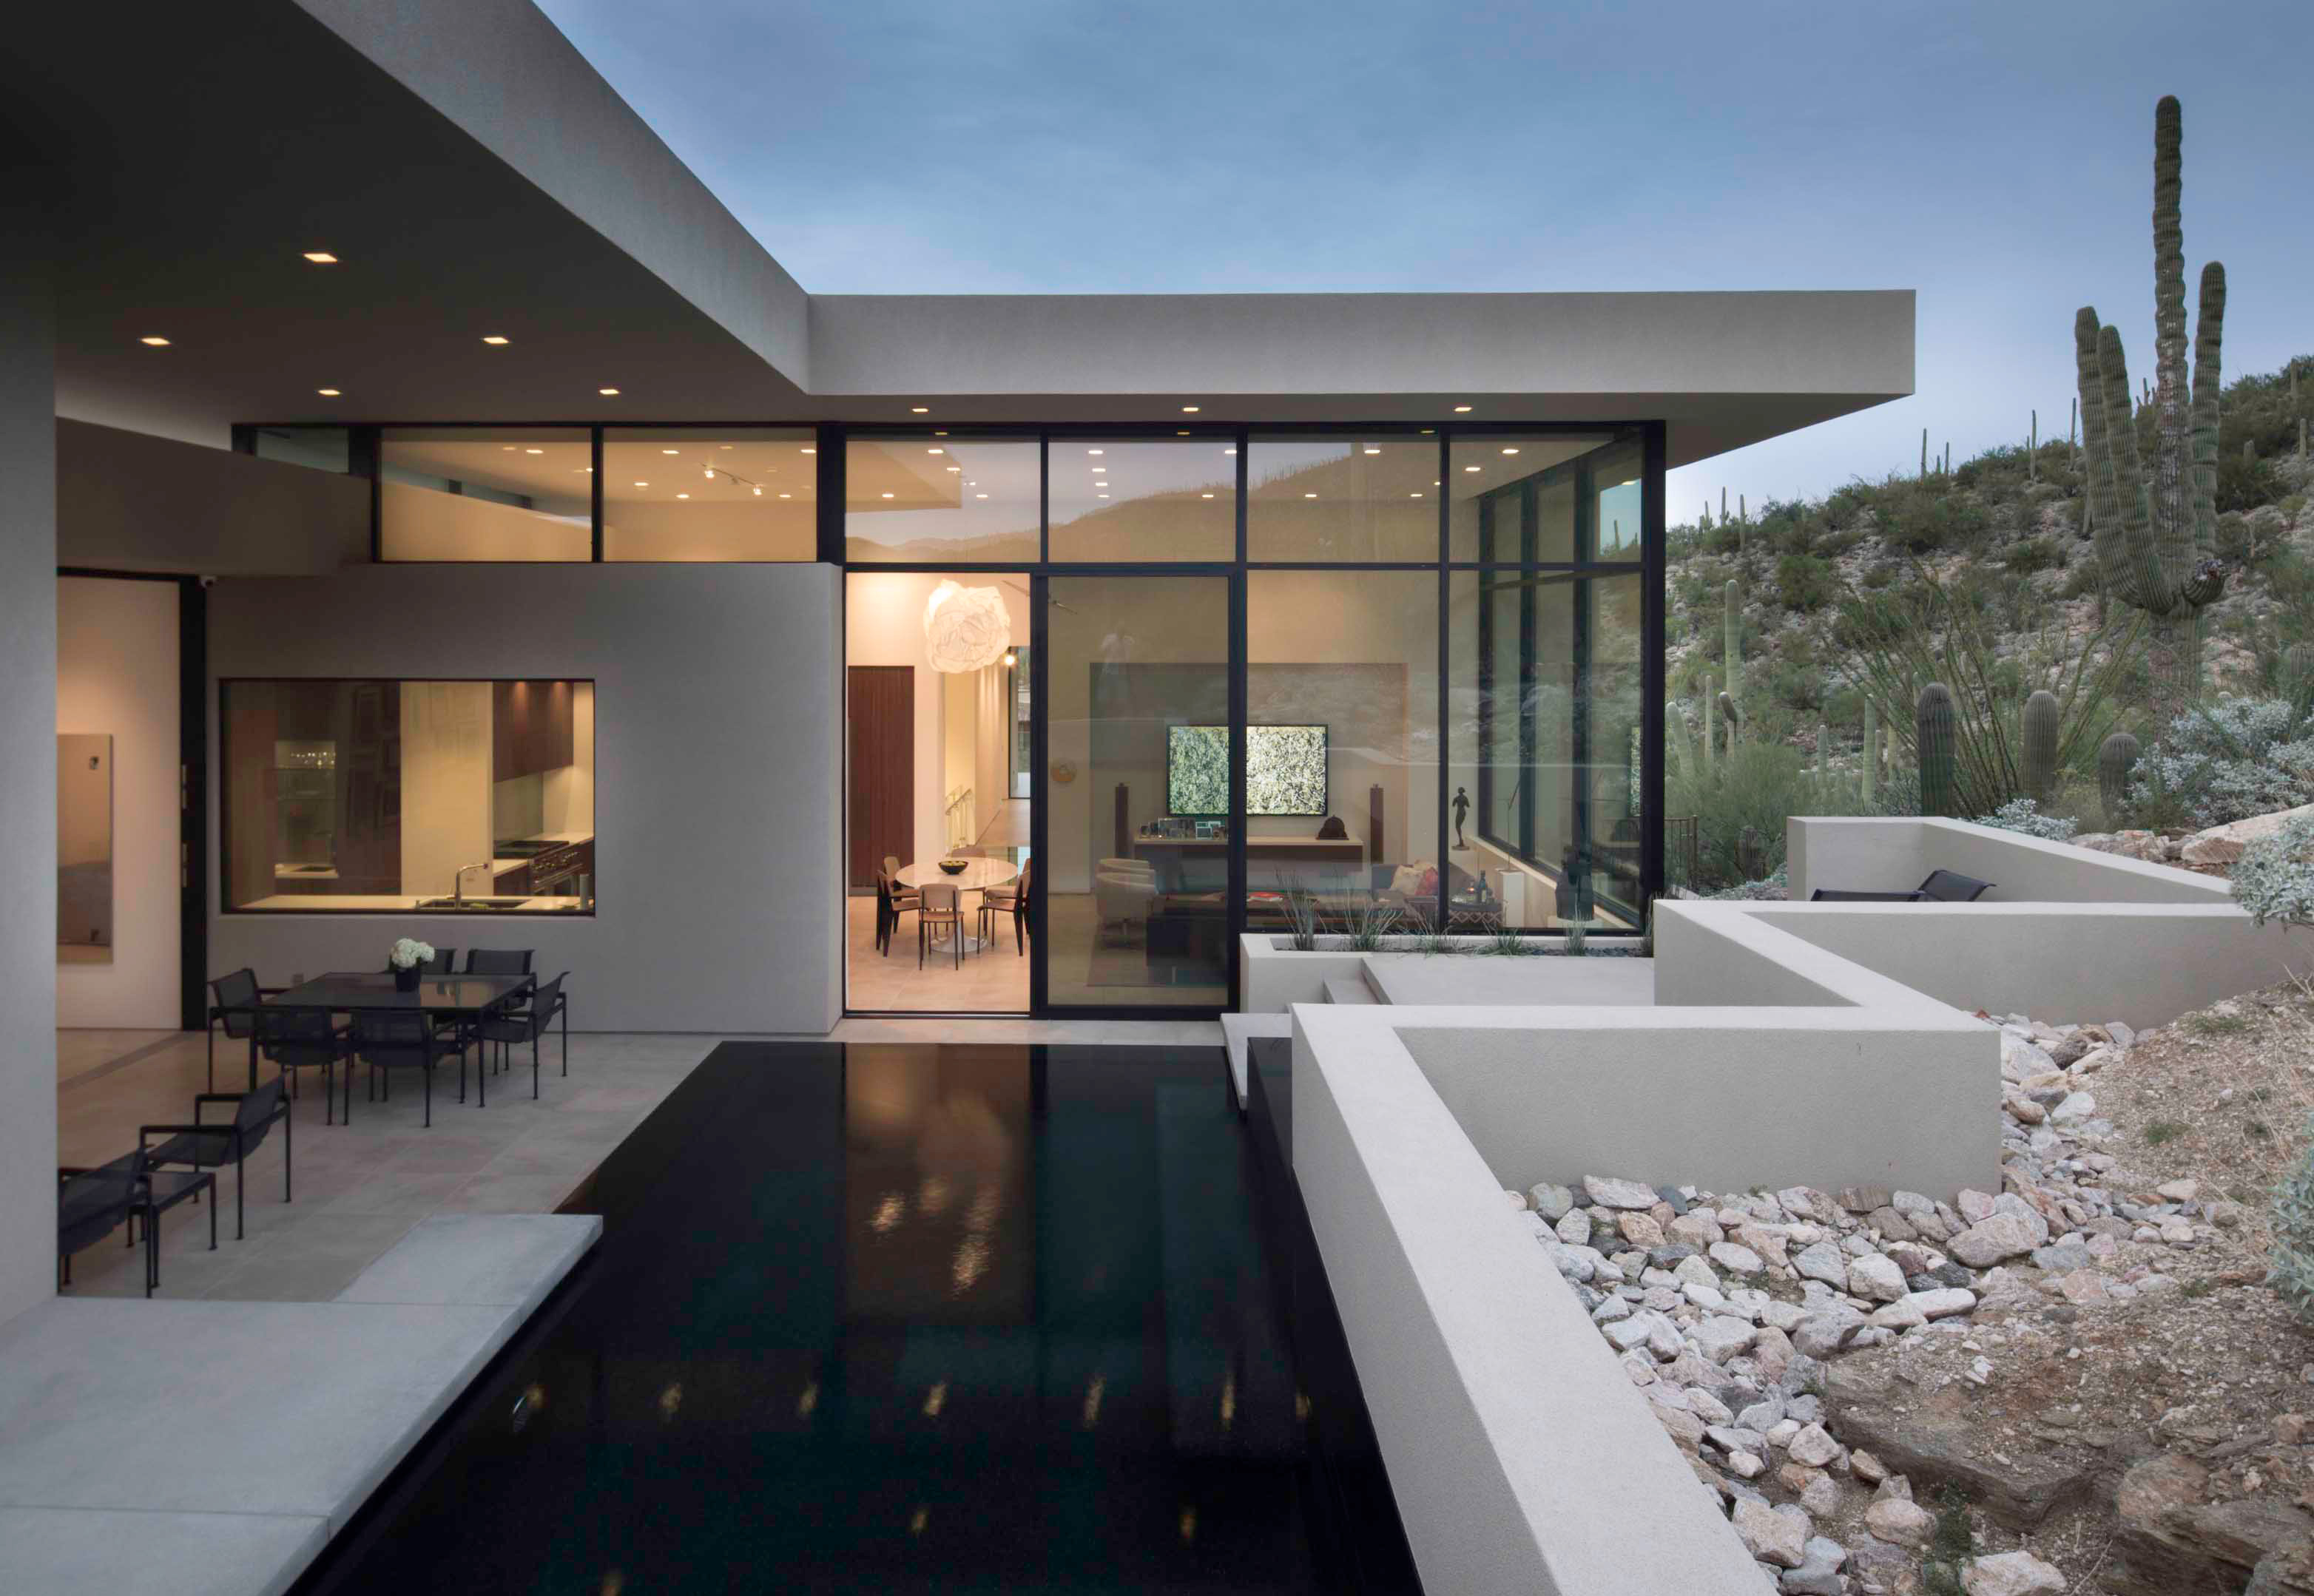 Modern desert home w/ glass windows